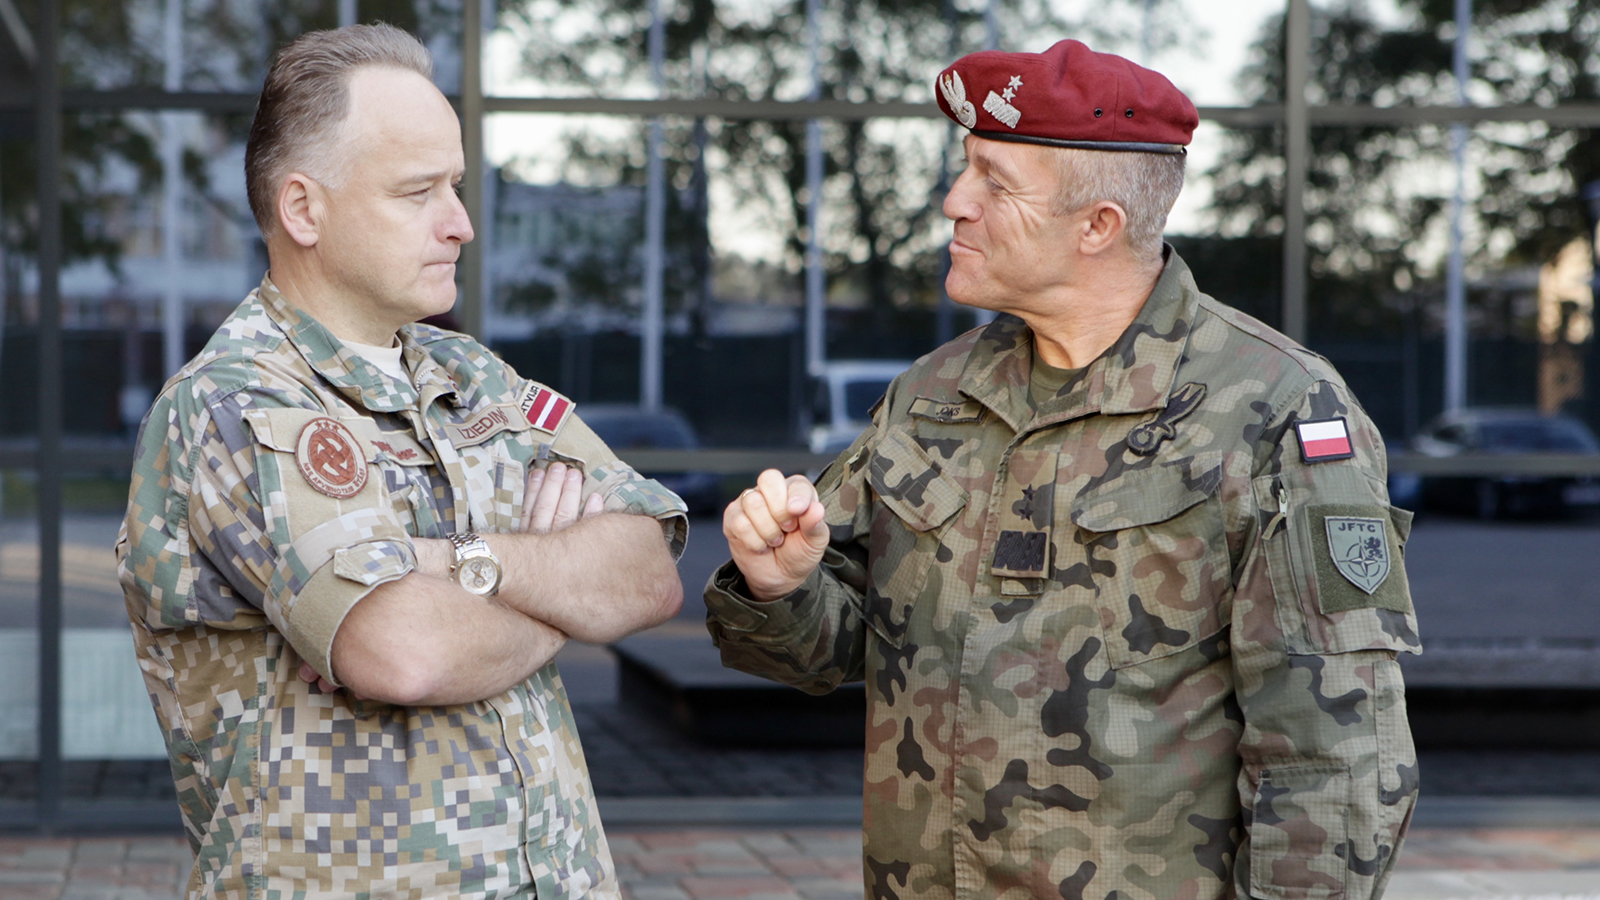 Major General Adam Joks, JFTC Commander, and Brigadier General Imants Ziedins, Chief of Staff Latvian Armed Forces Joint HQ